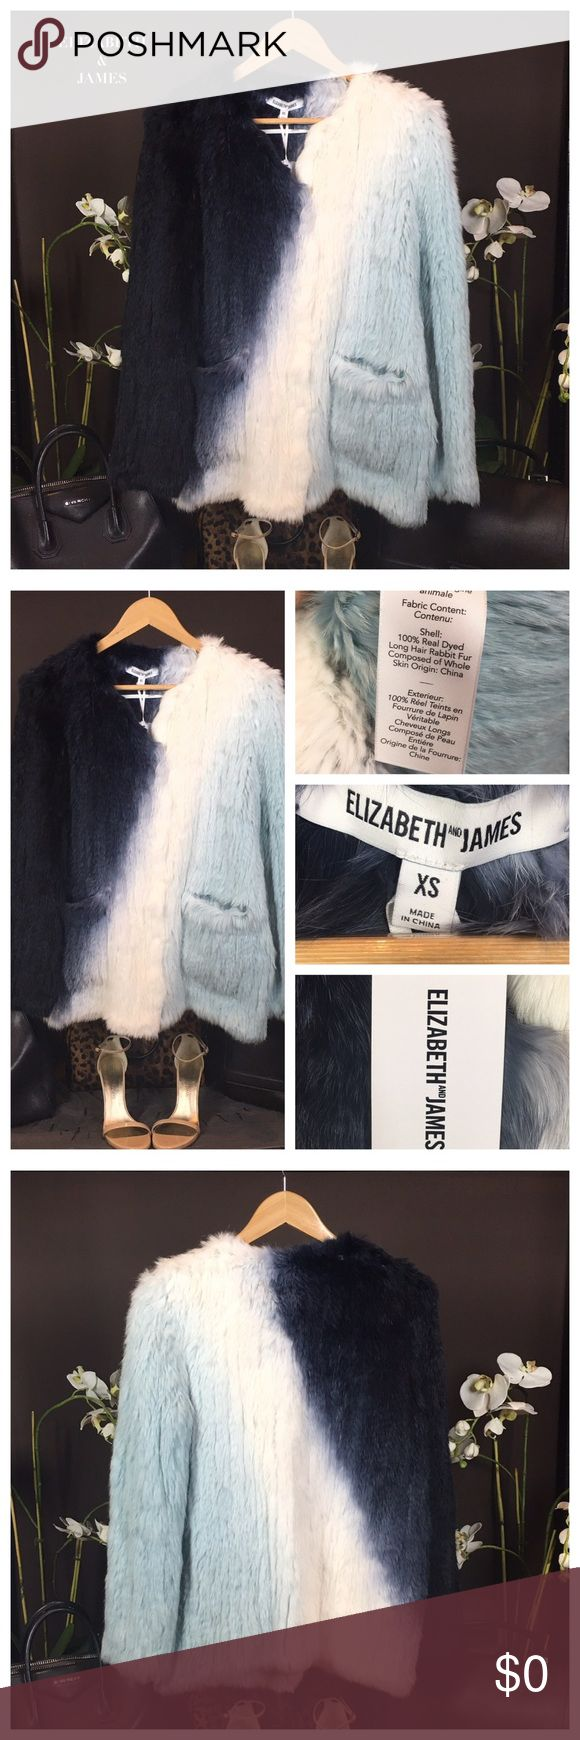 NWT ELIZABETH & JAMES BLUE & WHITE FUR COAT Elizabeth and James fur jacket boasts a lush feel for a comfortable wear throughout the day. Color: Jewel Blue. Size XS. (Runs slightly large) Material: 100% Real dyed long haired Rabbit fur. Condition: Excellent-NWT. Sold out. Elizabeth and James Jackets & Coats